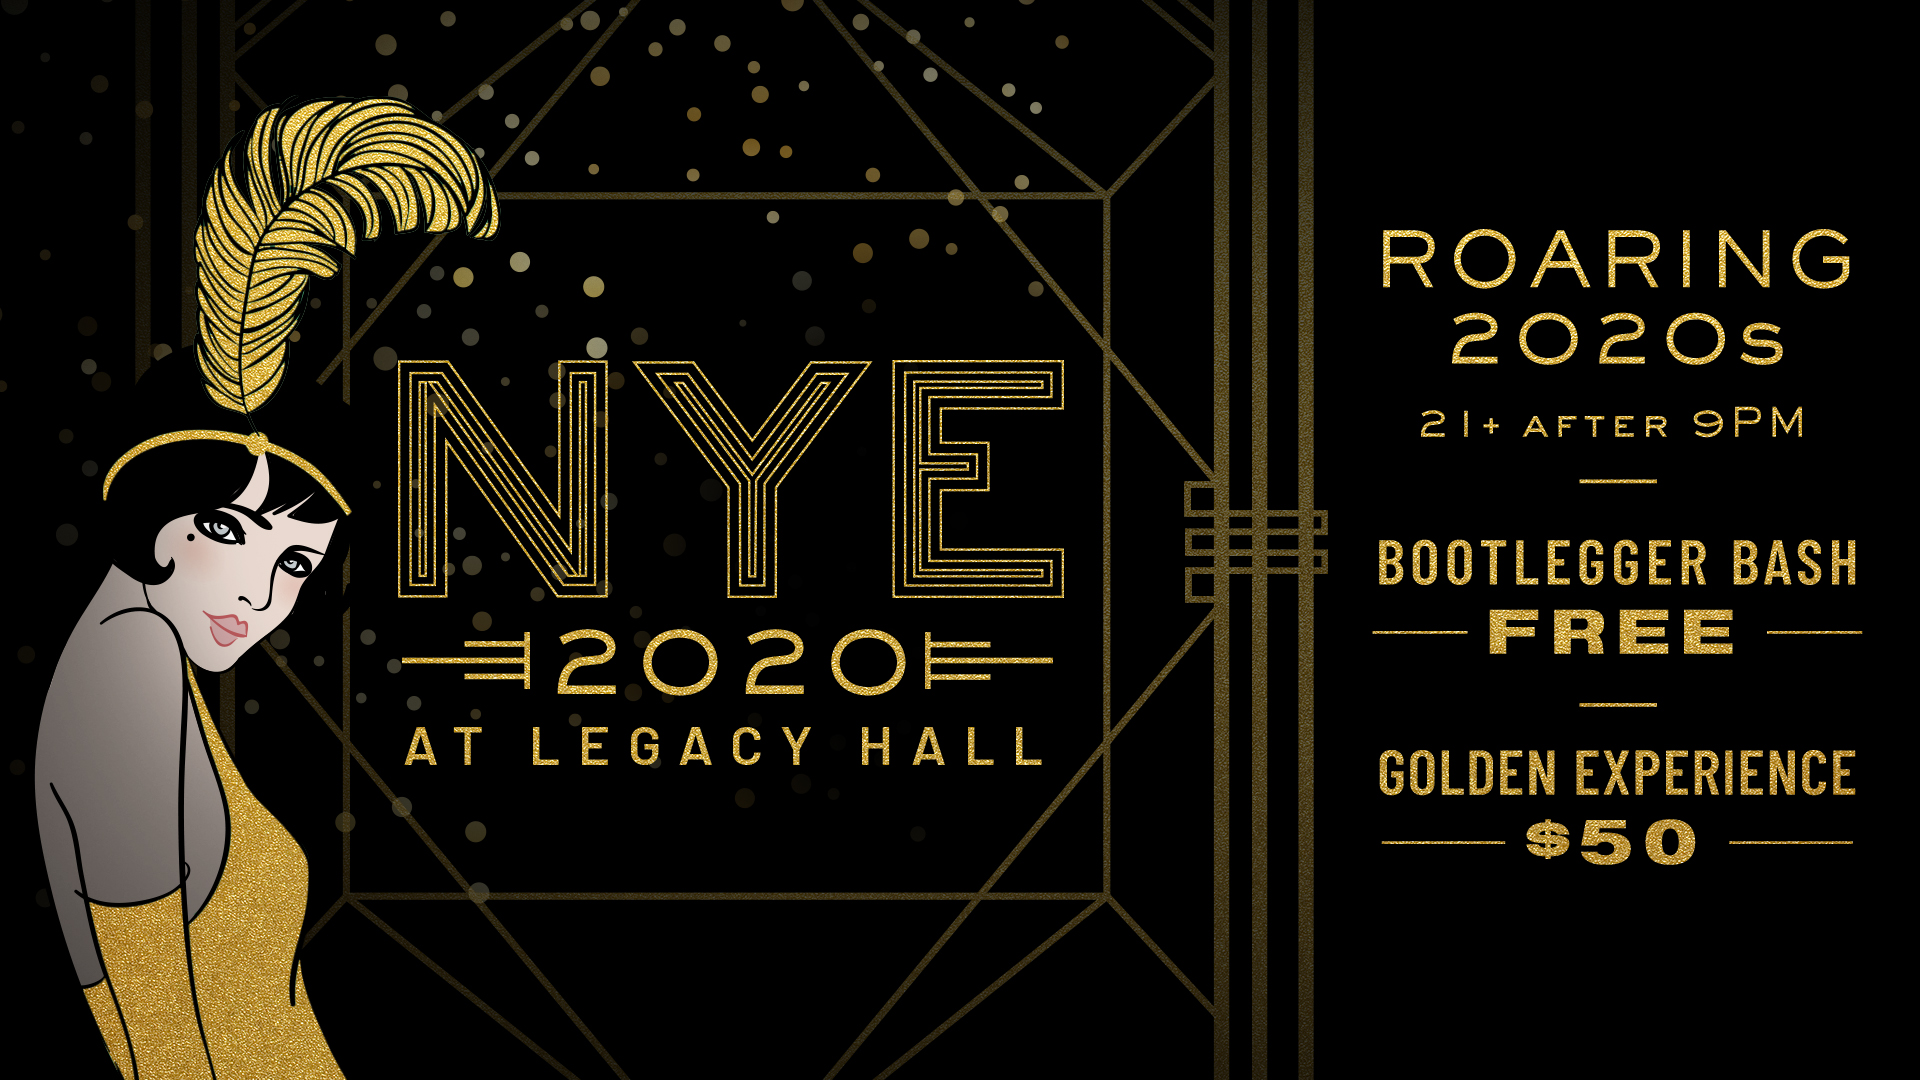 Roaring 2020s NYE at Legacy Hall - hero